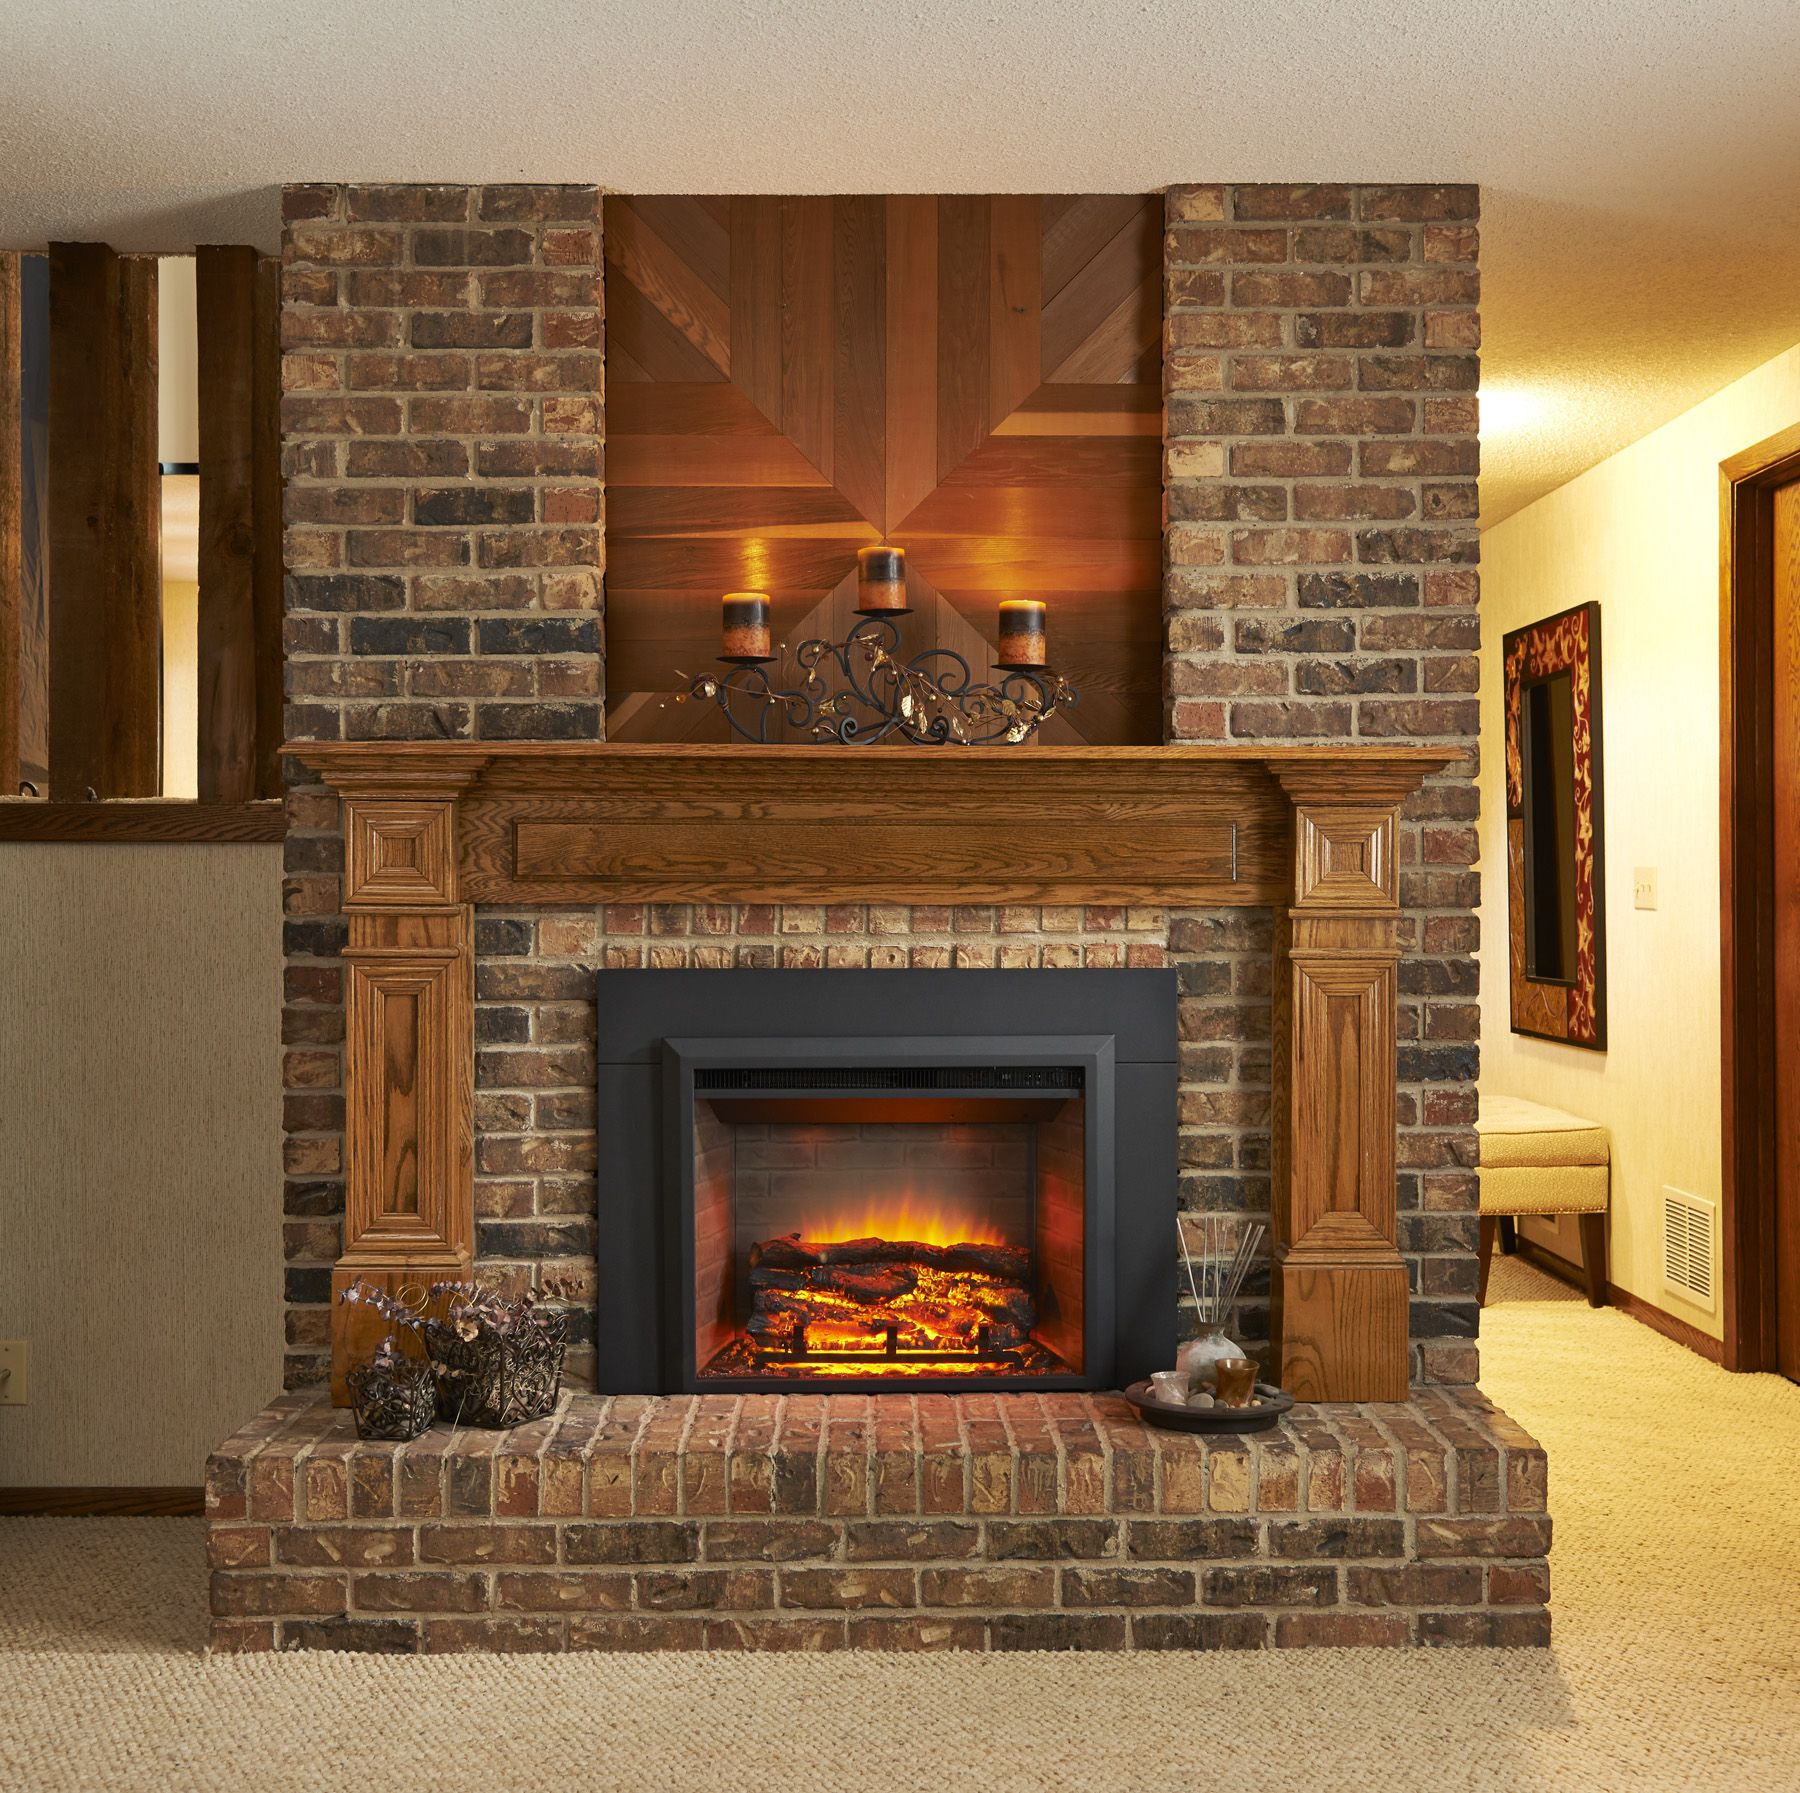 New electric fireplace insert fits into any existing fireplace